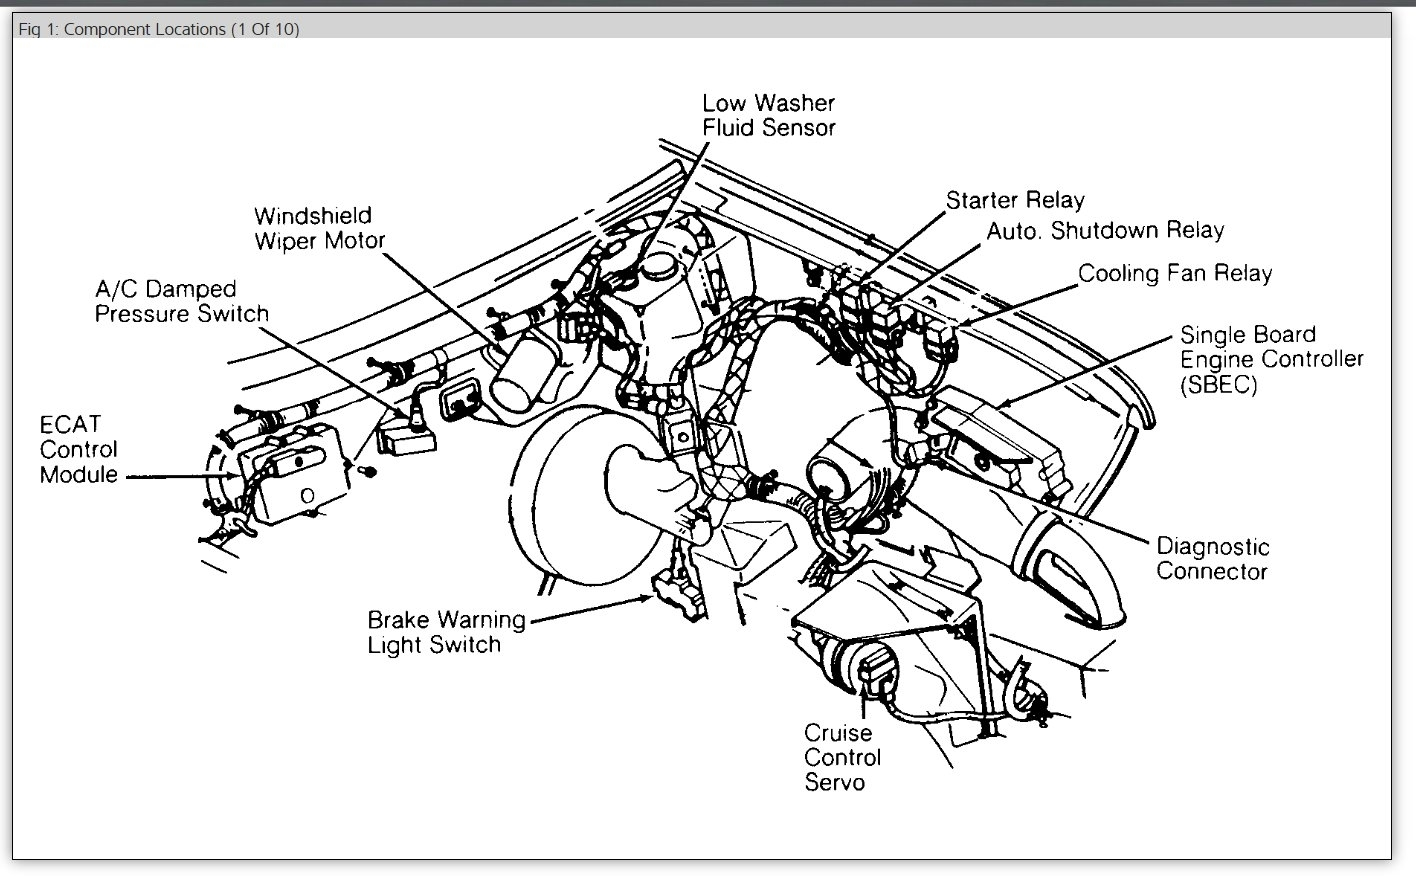 2000 Chrysler Concorde Engine Cooling System Diagram 2000